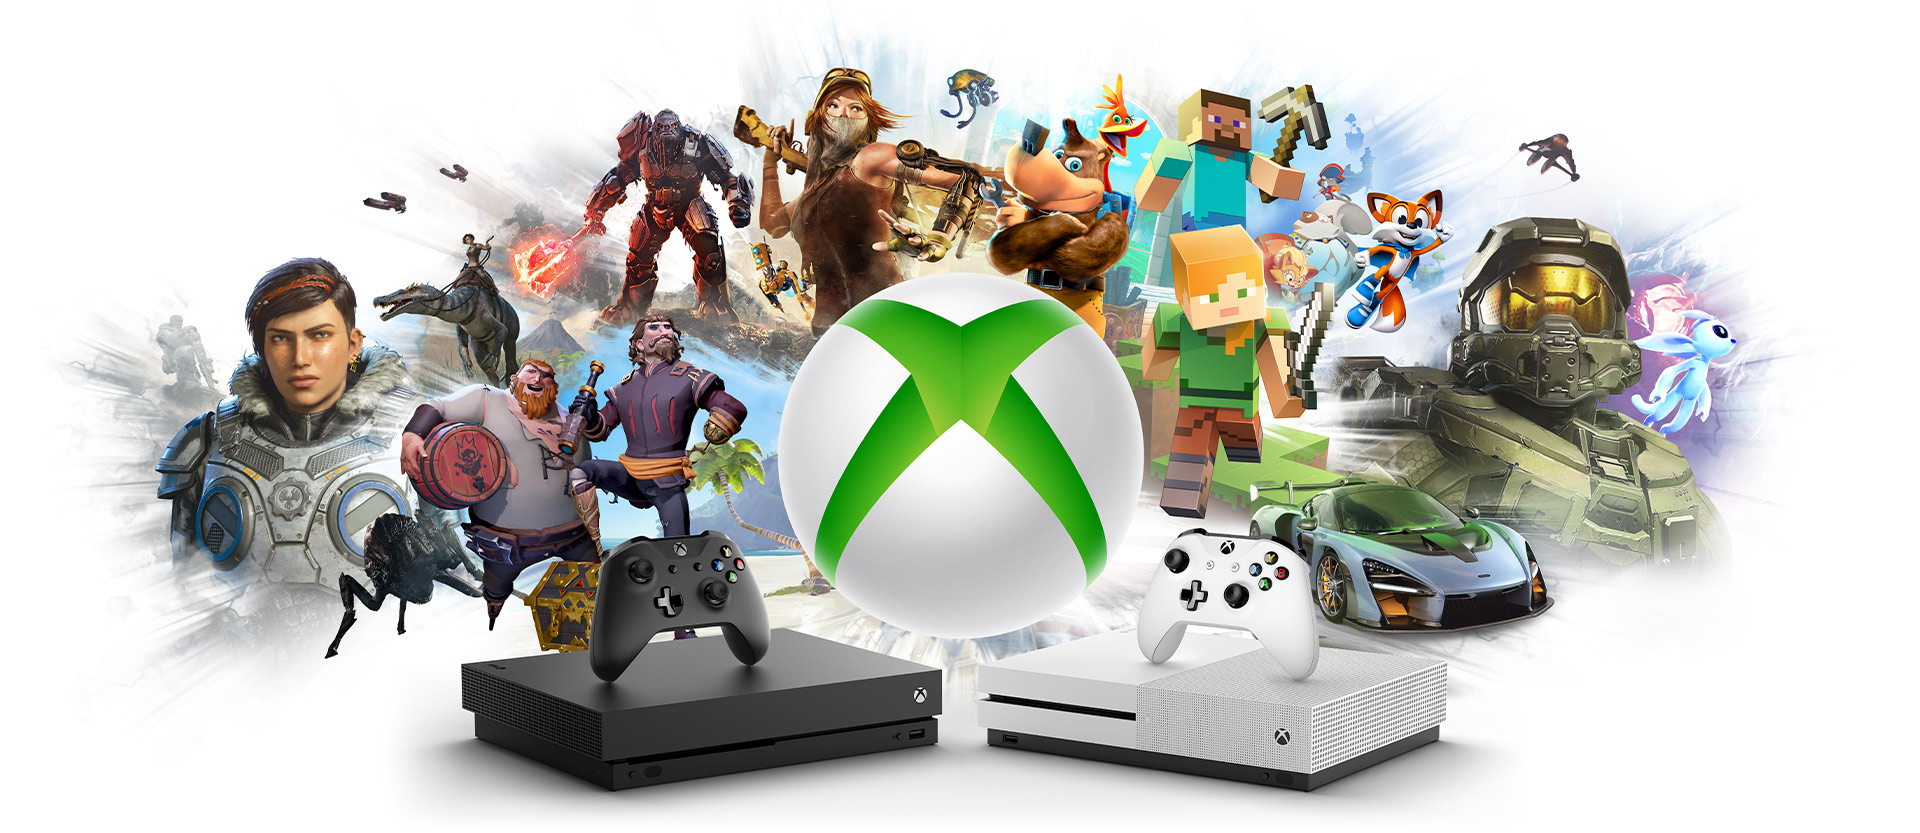 Xbox One X and Xbox One S in front of a collage of Xbox game characters